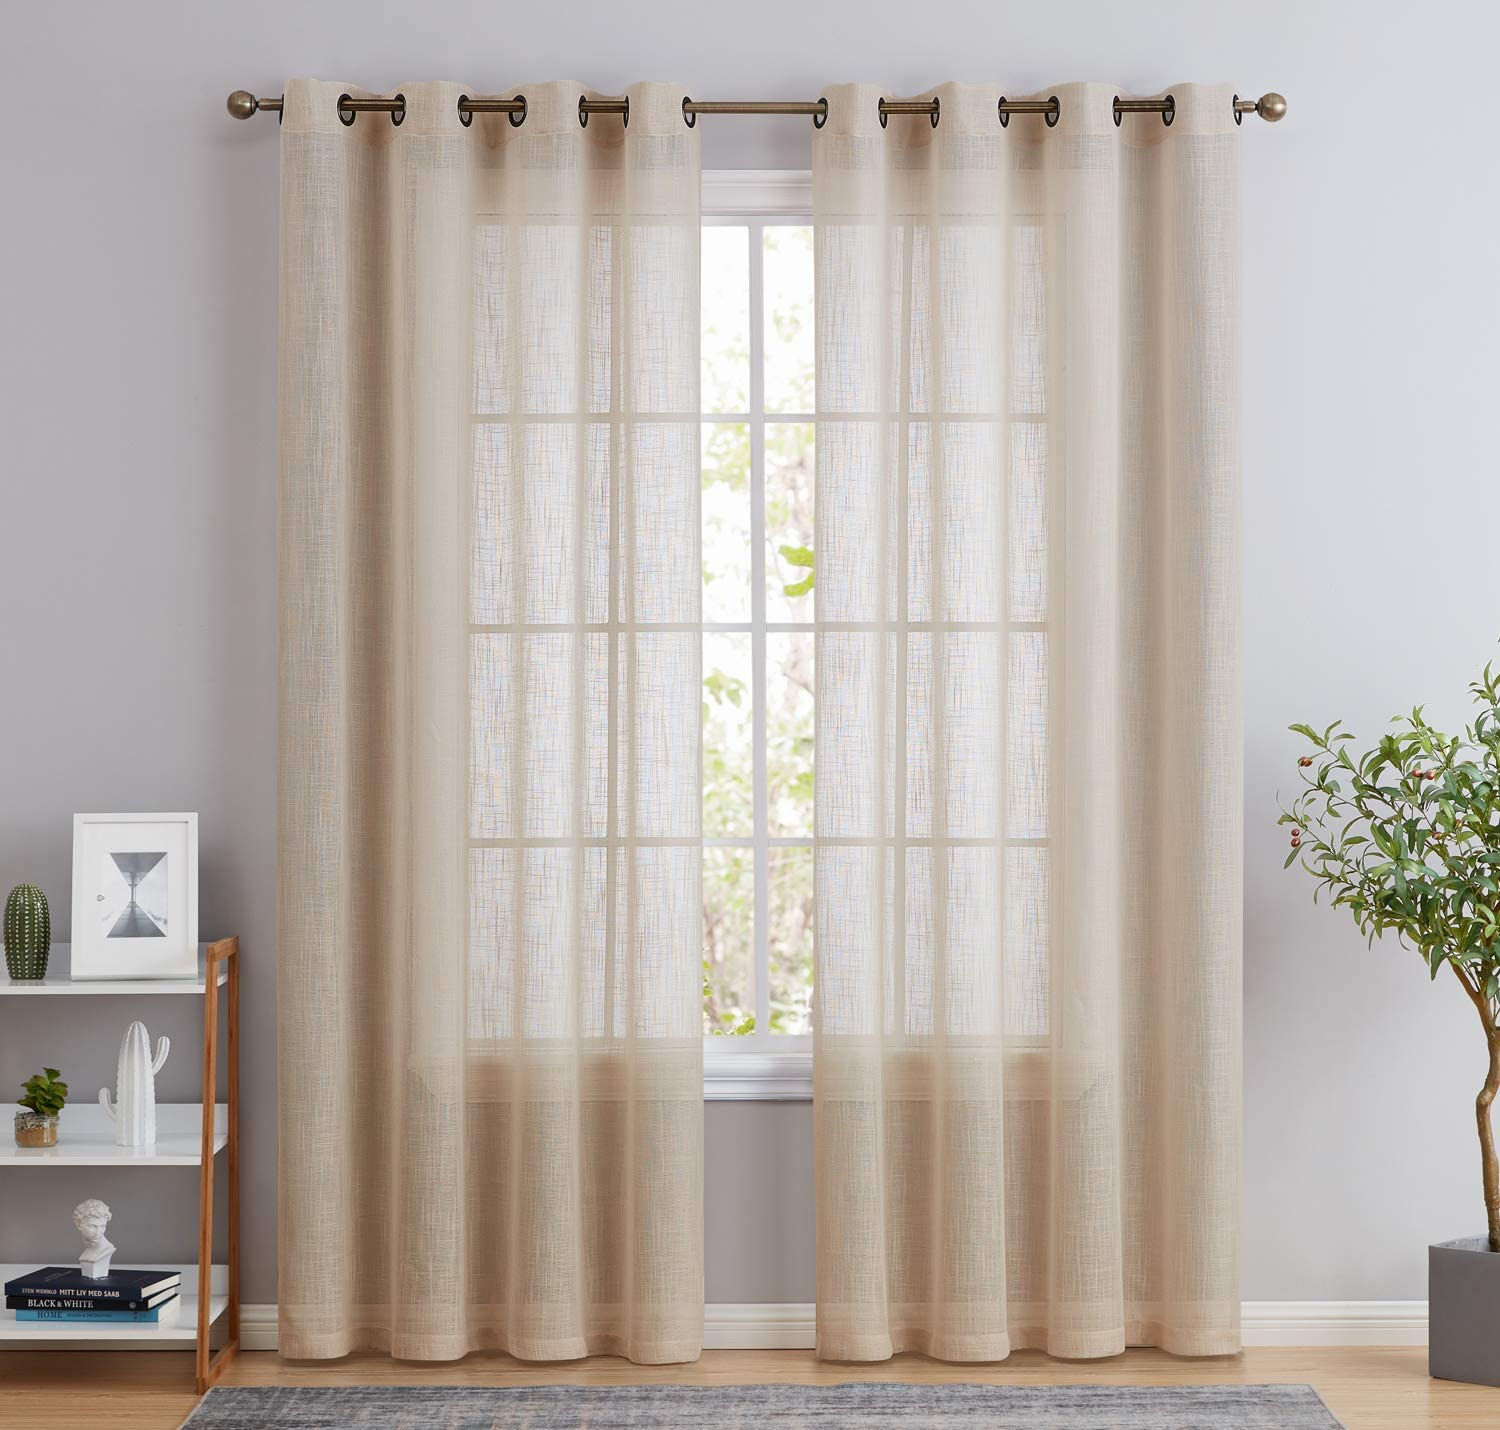 HLC.ME Abbey Faux Linen Textured Semi Sheer Privacy Light Filtering Transparent Window Grommet Floor Length Thick Curtains Drapery Panels for Office & Living Room, 2 Panels (54 W x 84 L, Beige)